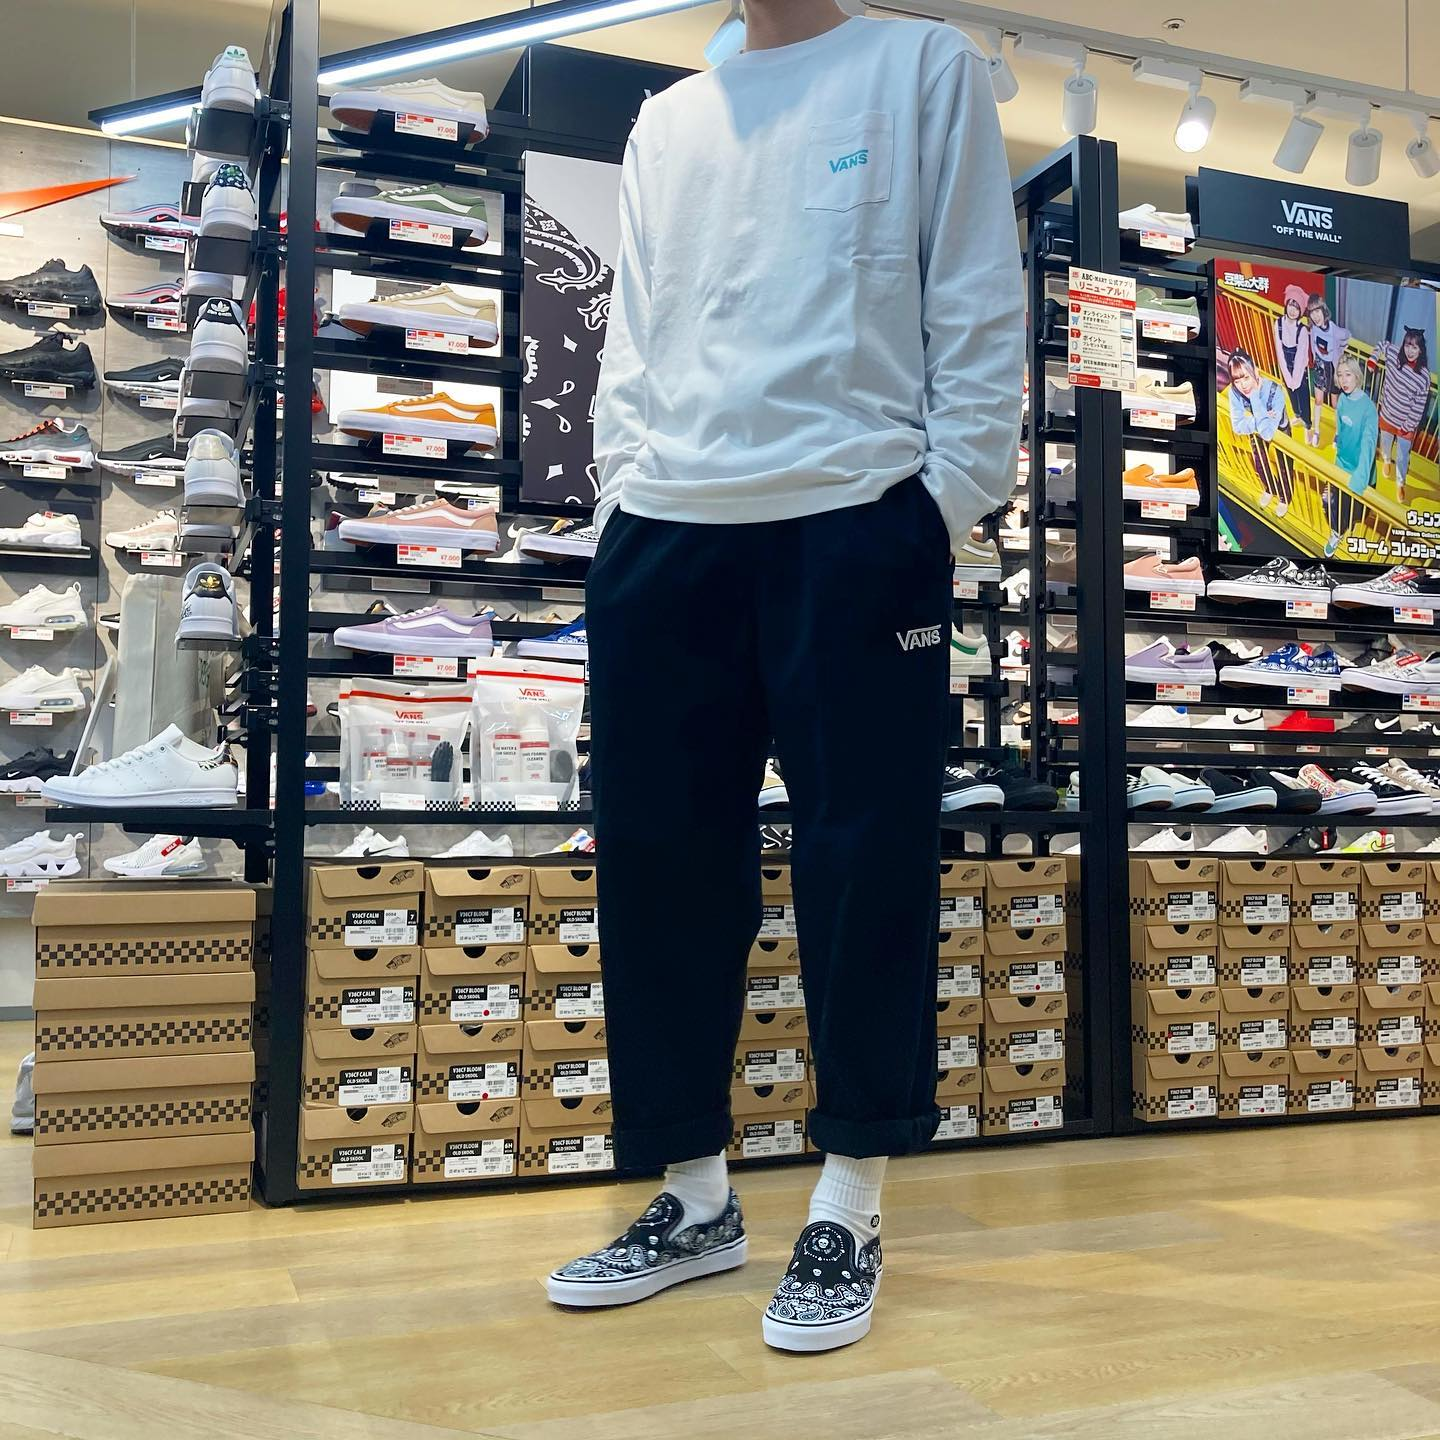 .<br /> こんにちは!🌞<br /> ABC-MART SPORTS熊本鶴屋NEW-S店です!<br /> .<br /> .<br /> 本日はVANSウェアのご紹介です!♂️🛹<br /> .<br /> .<br /> (トップス)<br /> M VANS STANDARD L/S TEE<br /> WHITE<br /> ¥5,500 tax in<br /> .<br /> (ボトムス)<br /> M VANS CHECKER PANTS<br /> BLACK<br /> ¥8,250 tax in<br /> .<br /> (シューズ)<br /> Classic Slip-On<br /> BANDANA BLK/WHT<br /> ¥6,600 tax in<br /> .<br /> .<br /> 是非店頭にてお試しください!<br /> .